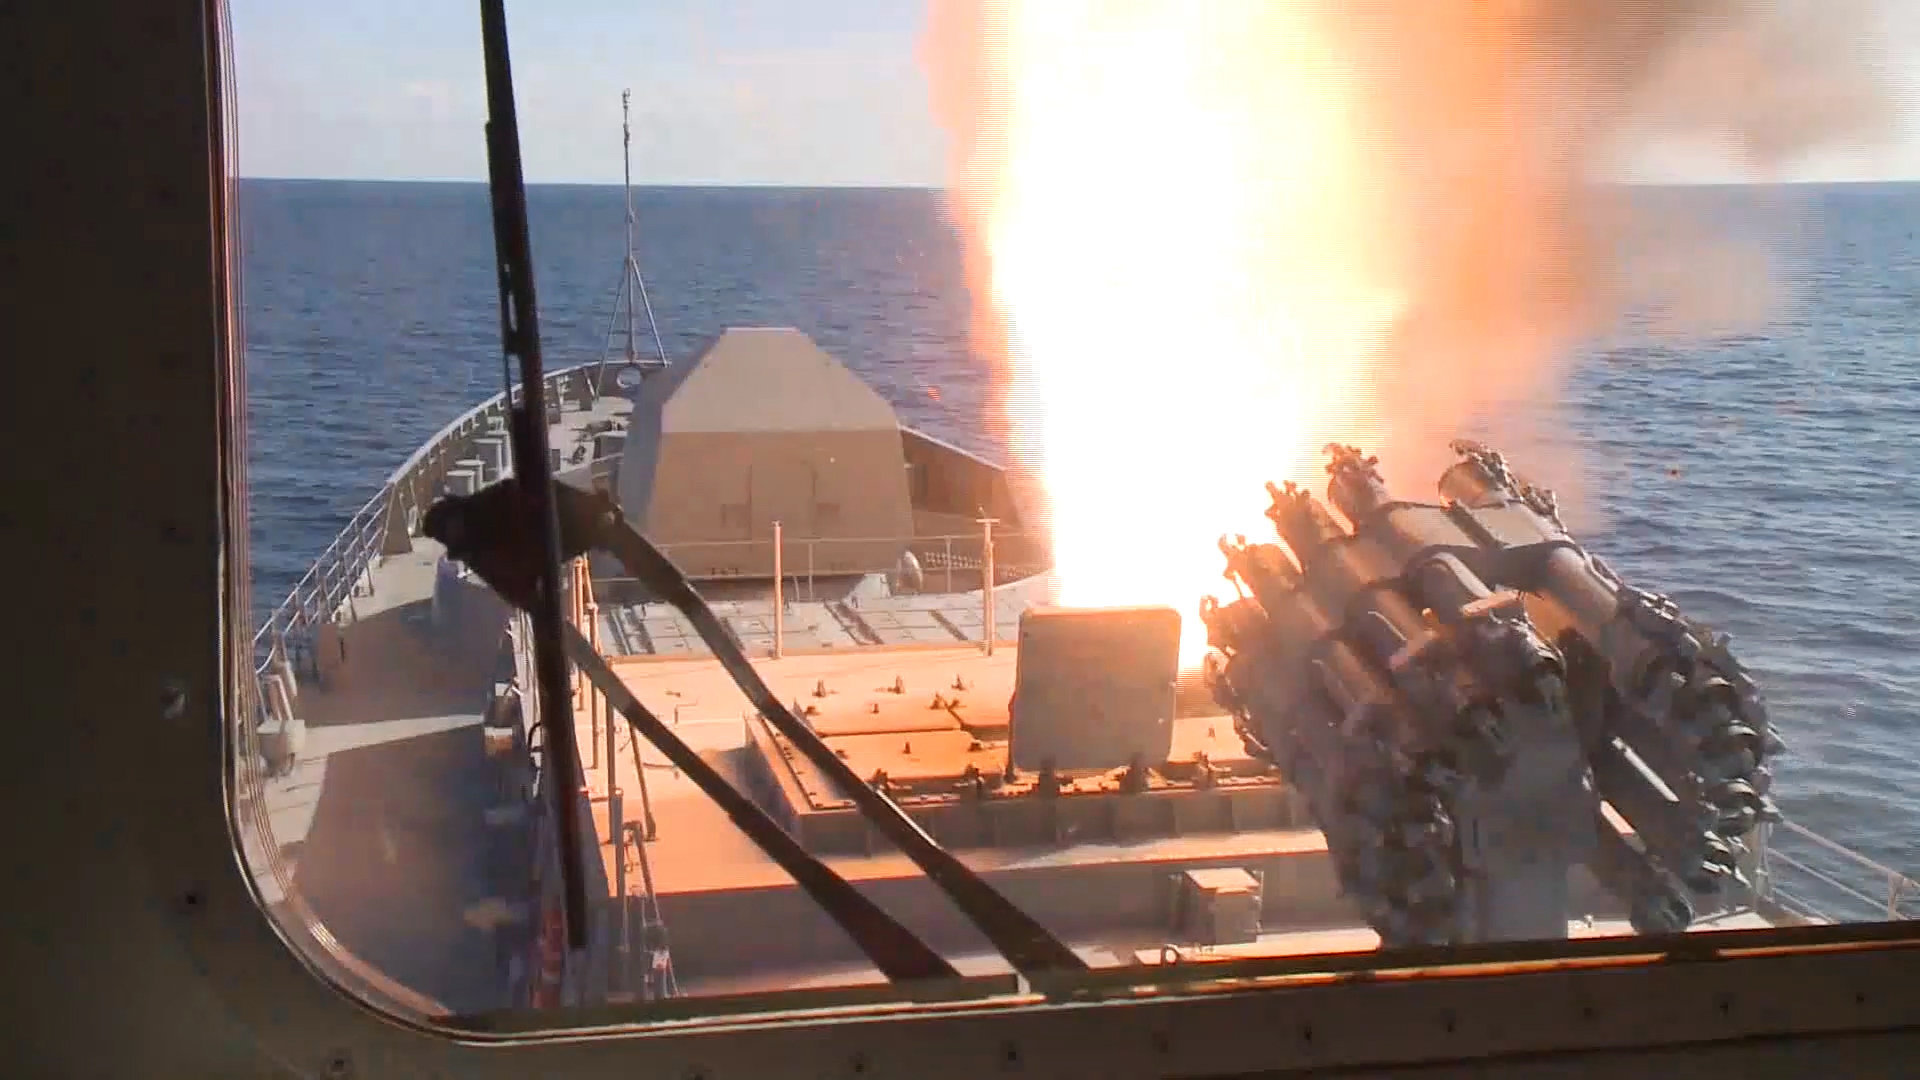 Admiral Grigorovich frigate launching its cruise missiles off the coast of Syria. RBU-6000 rocket launcher featured in the foreground.